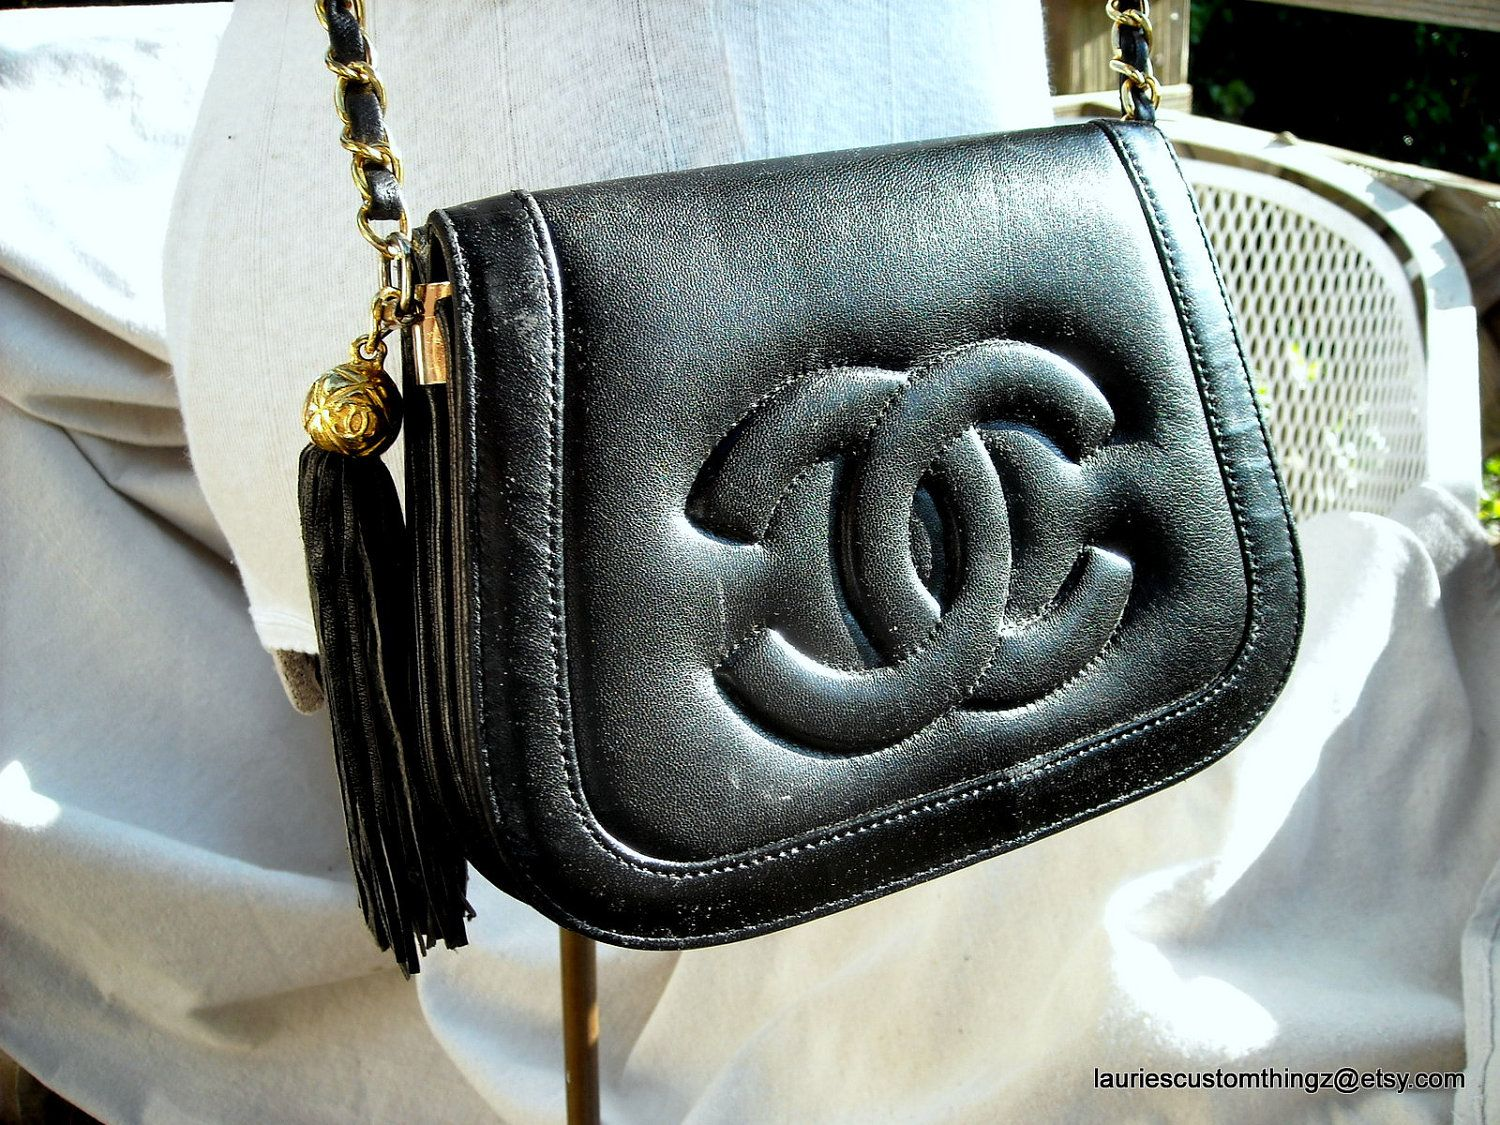 667b3989281c Vintage Chanel flap bag with tassel. #chanel #vintage #timeless #flapbag #cc